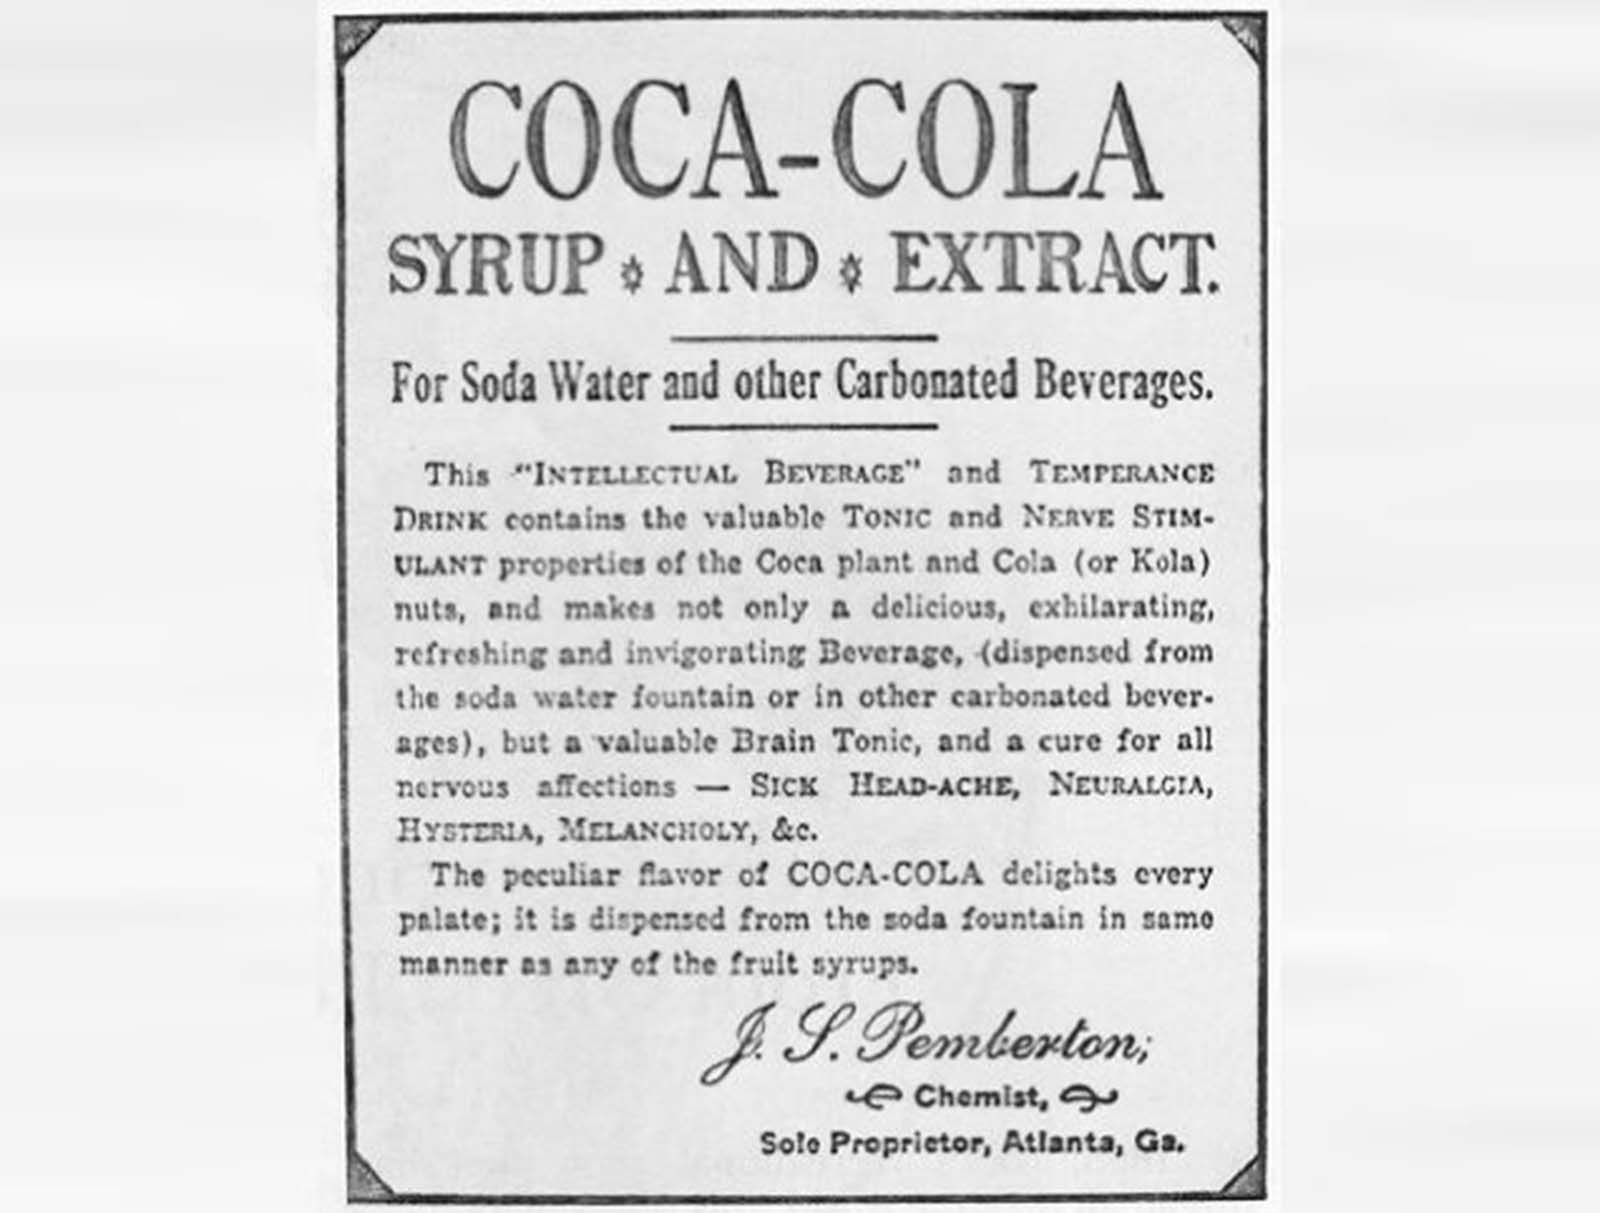 John Pemberton invented the famous soft-drink as a patent medicine in 1886. From 1891 to 1904, it had an estimated 9 milligrams of cocaine per glass.